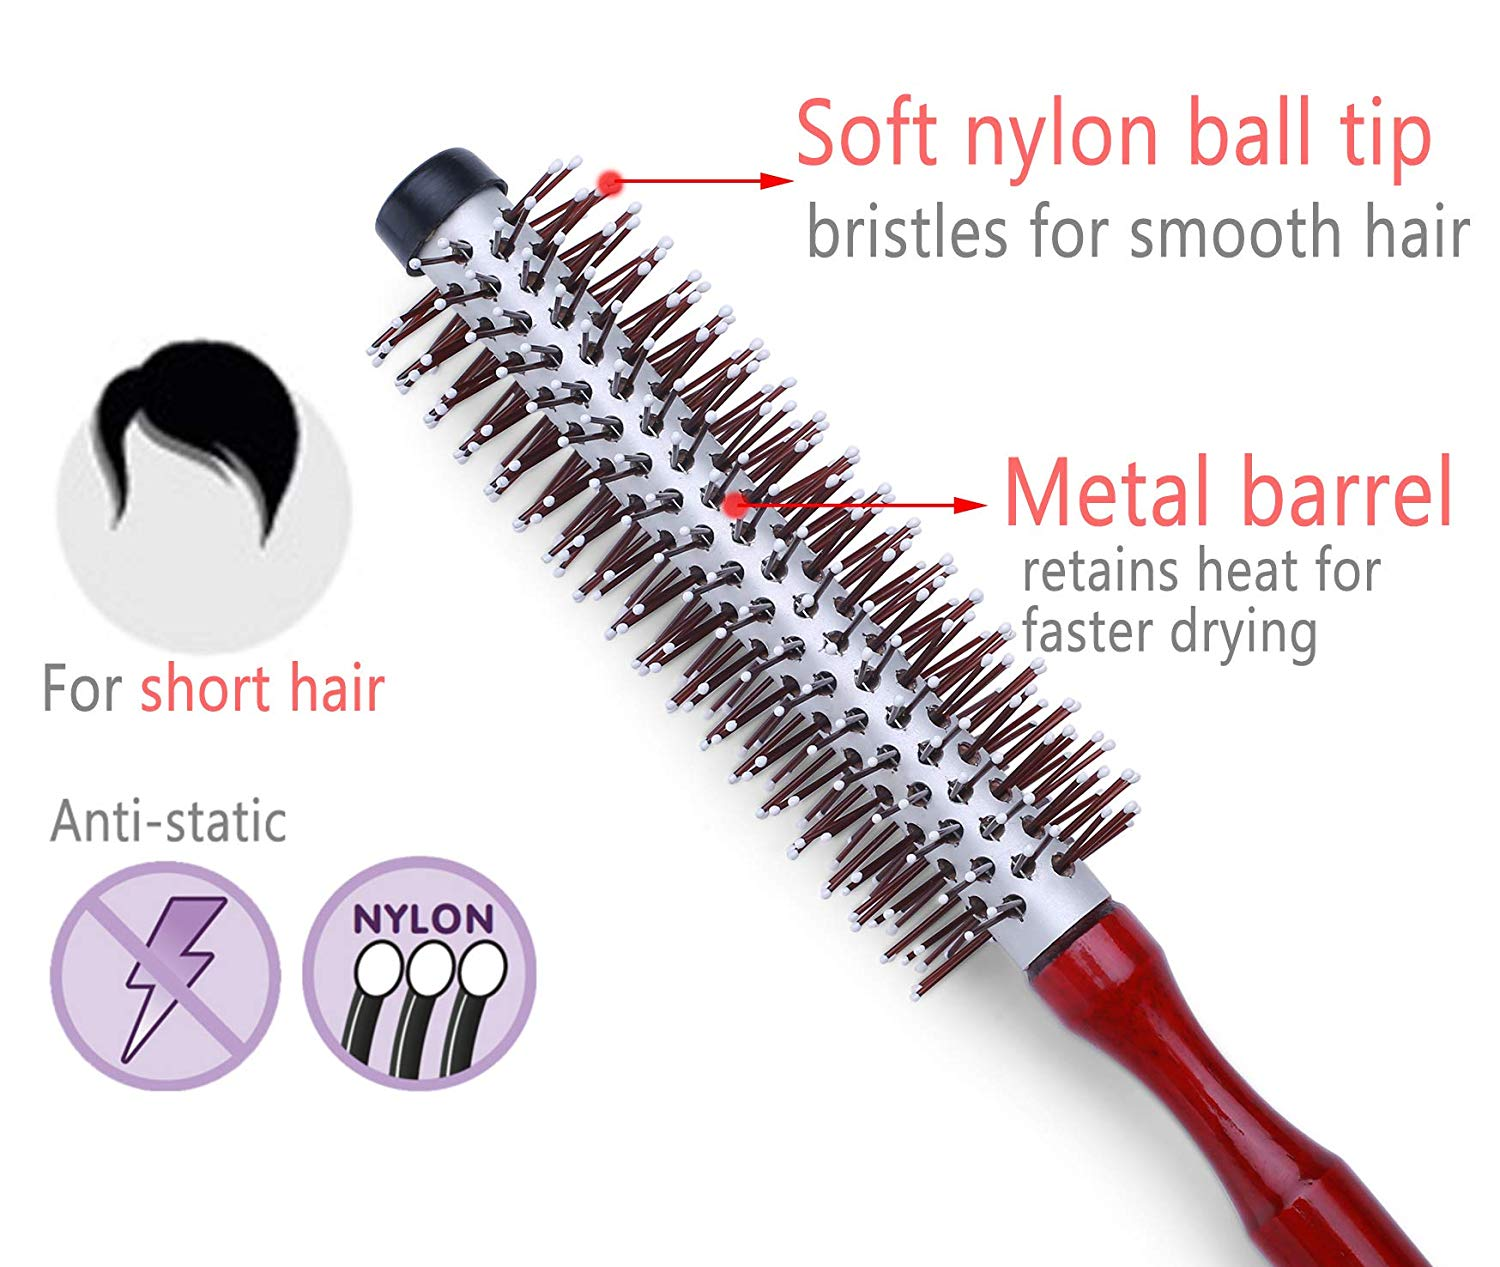 Small Round Brush for Blow Drying Short Hair